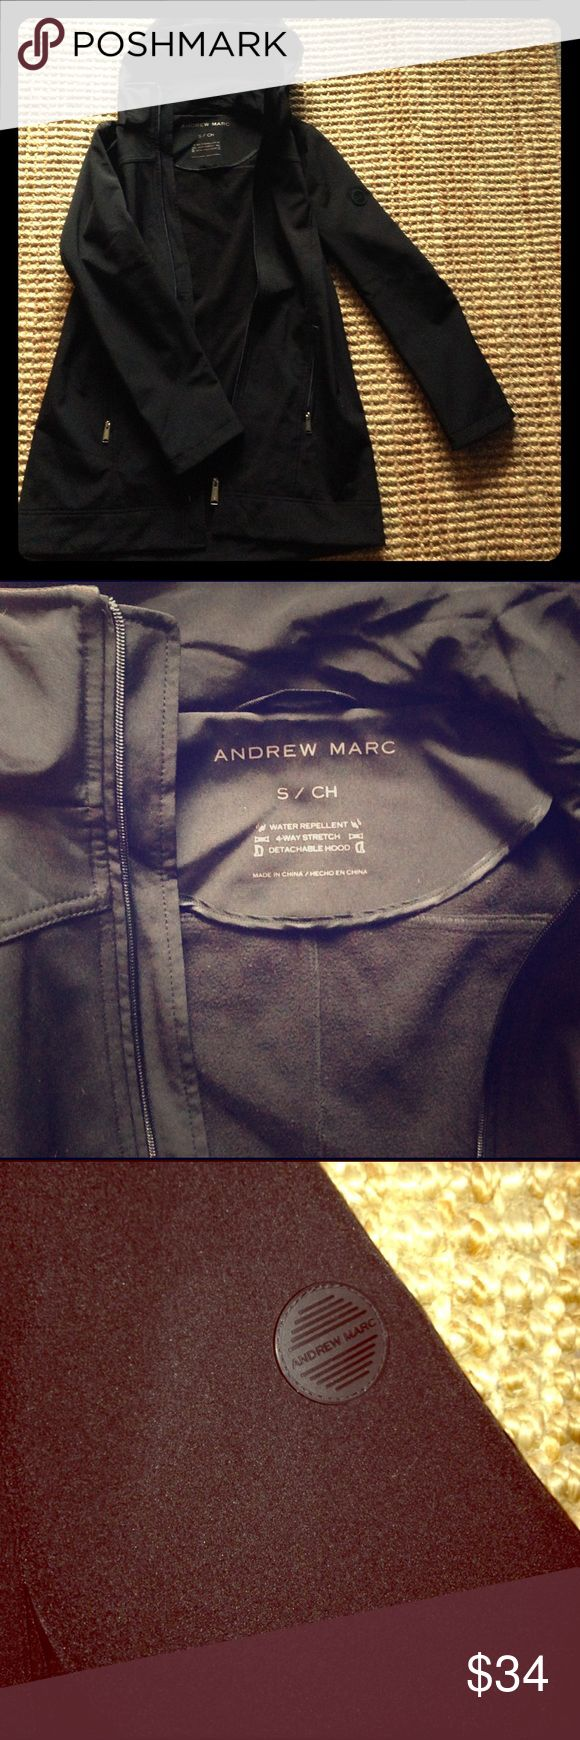 Andrew Marc softshell coat EUC. Black, softshell. 4-way stretch. Water repellent. Detachable hood. Only worn once! Andrew Marc Jackets & Coats Utility Jackets